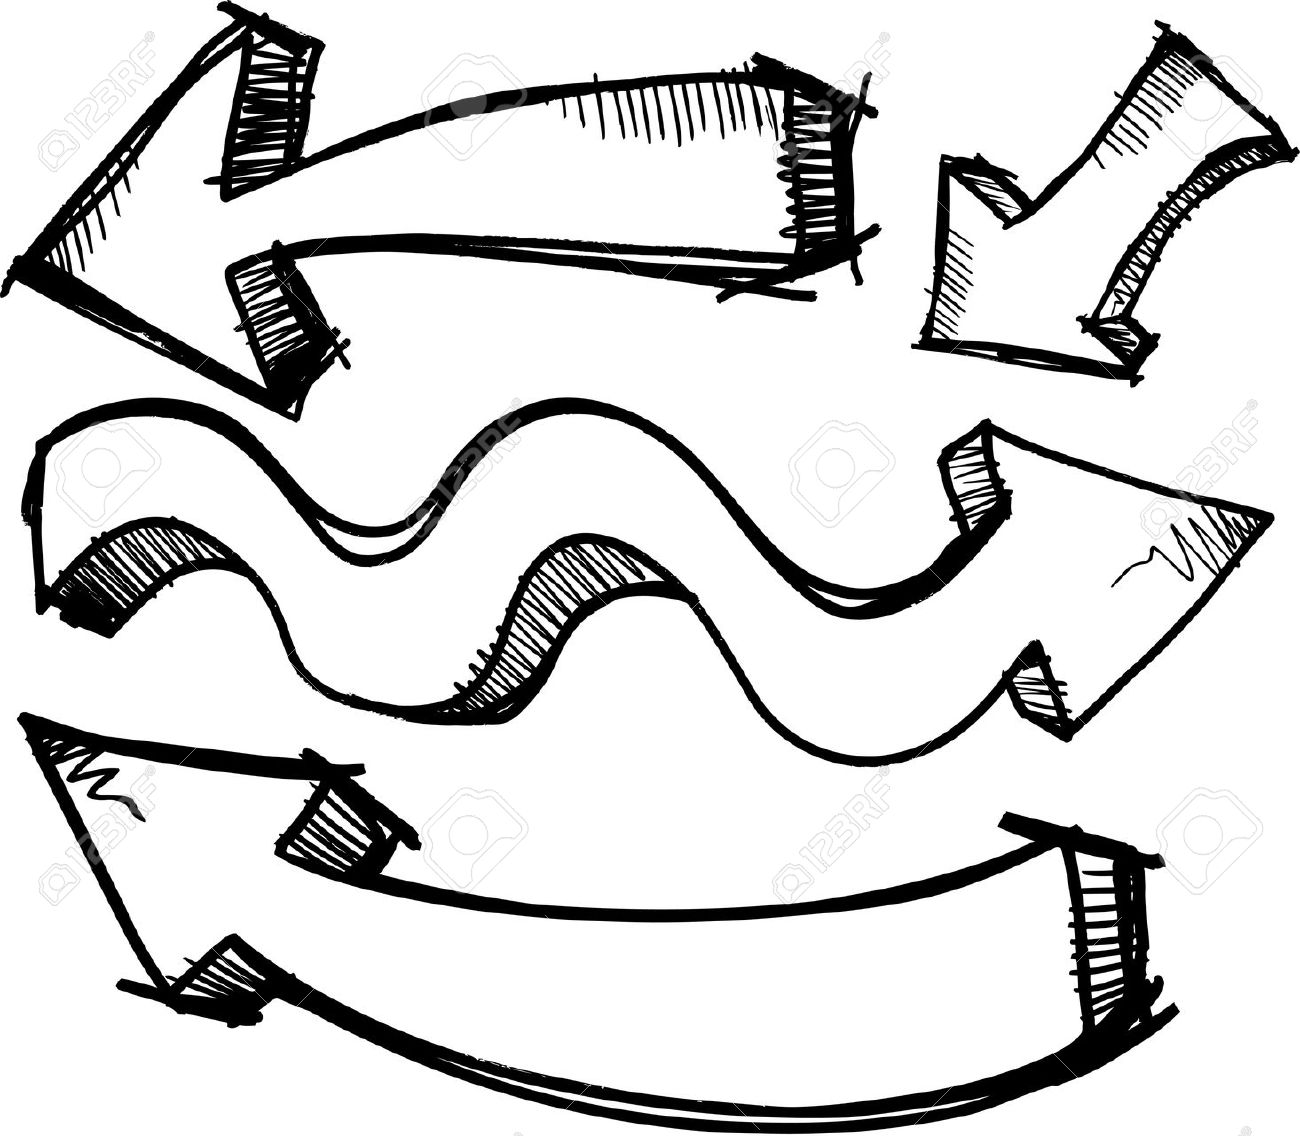 Doodle arrow clip art picture royalty free stock Free doodle arrow clipart - ClipartFest picture royalty free stock